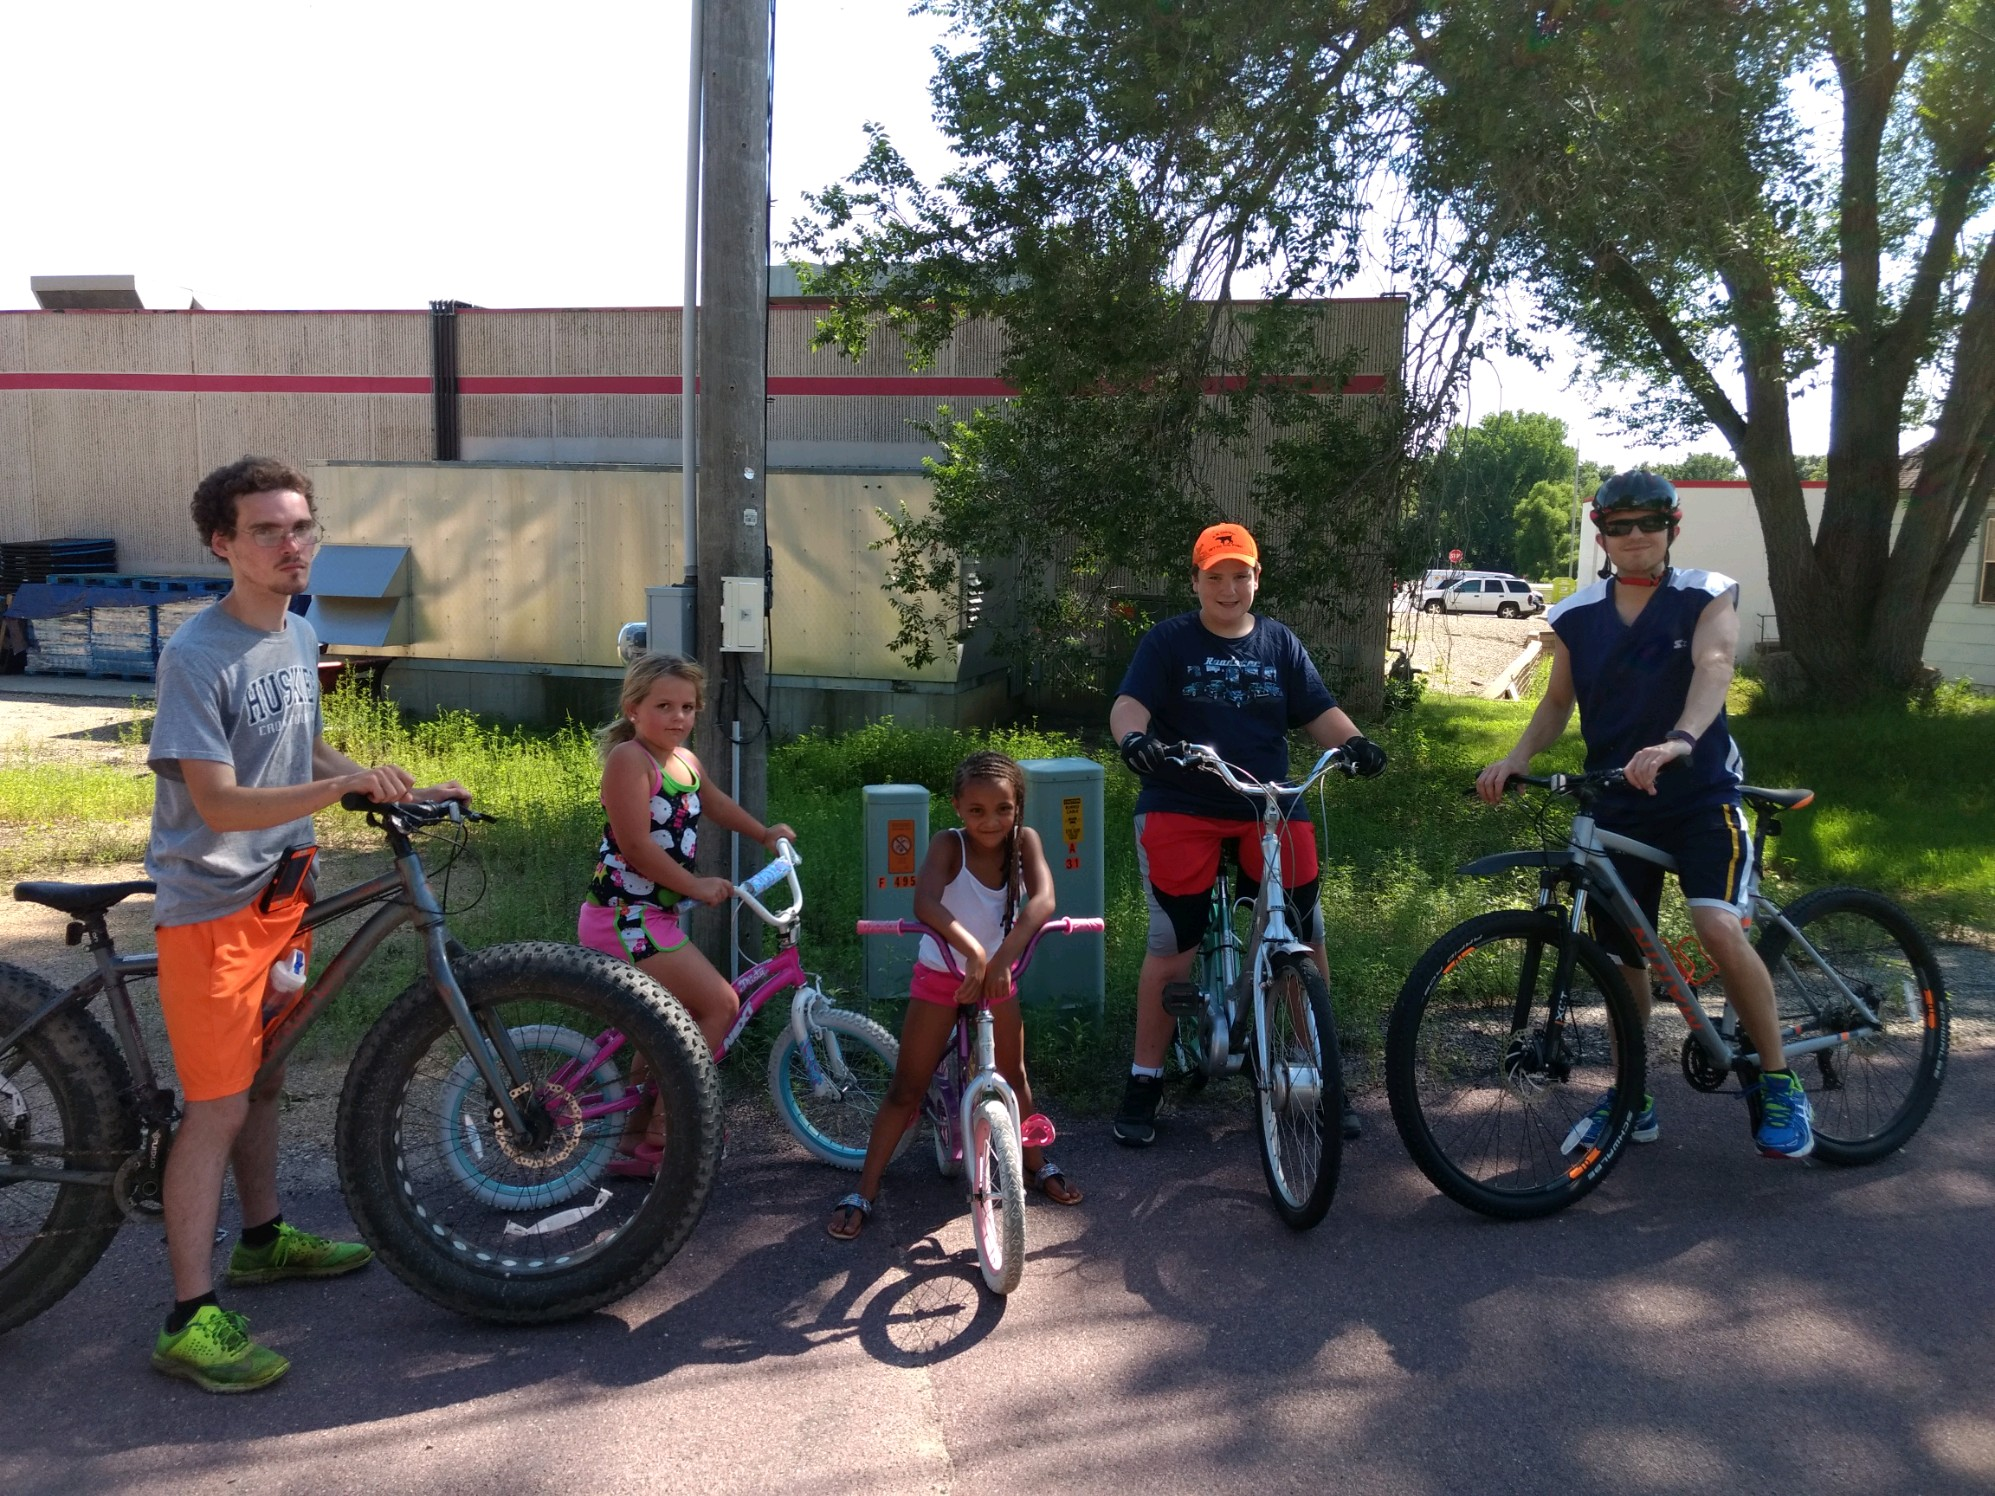 Kids pose for a picture on their bikes